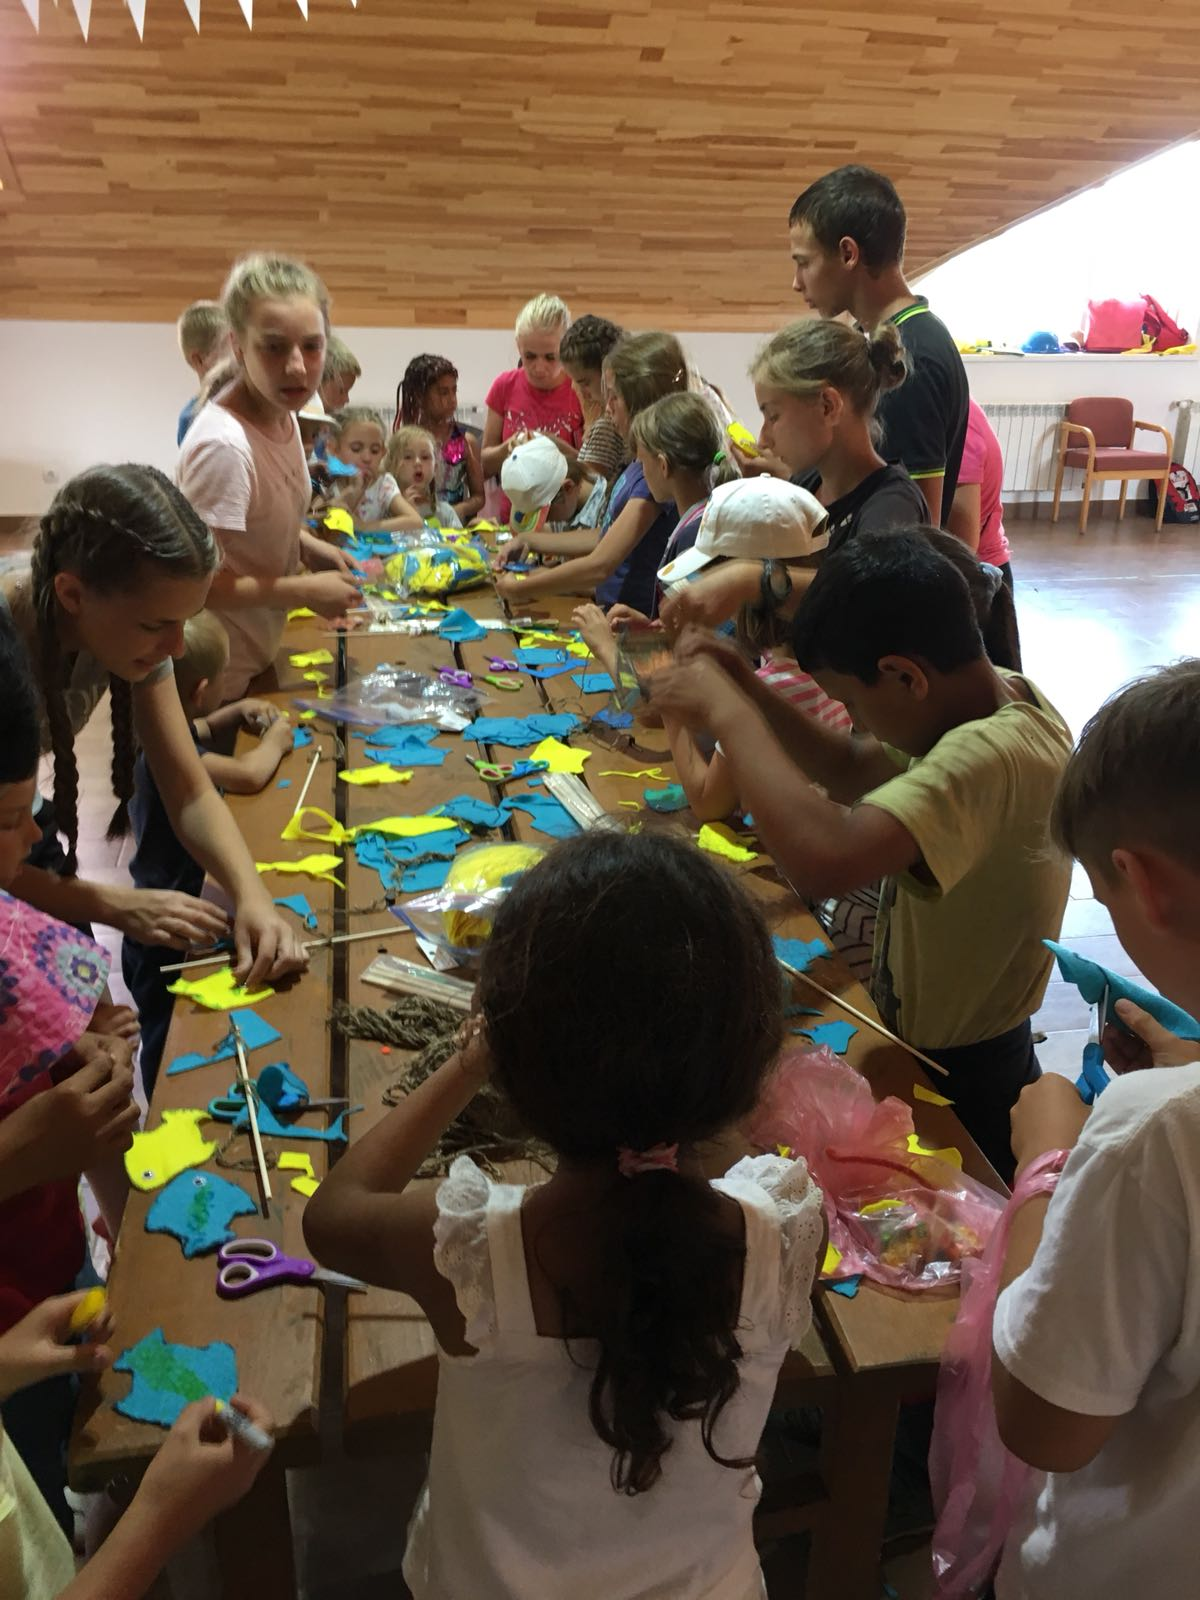 Today is Craft Mania day! There were three stations (plus one secret station) of crafts for the kids to make at the end of the day.